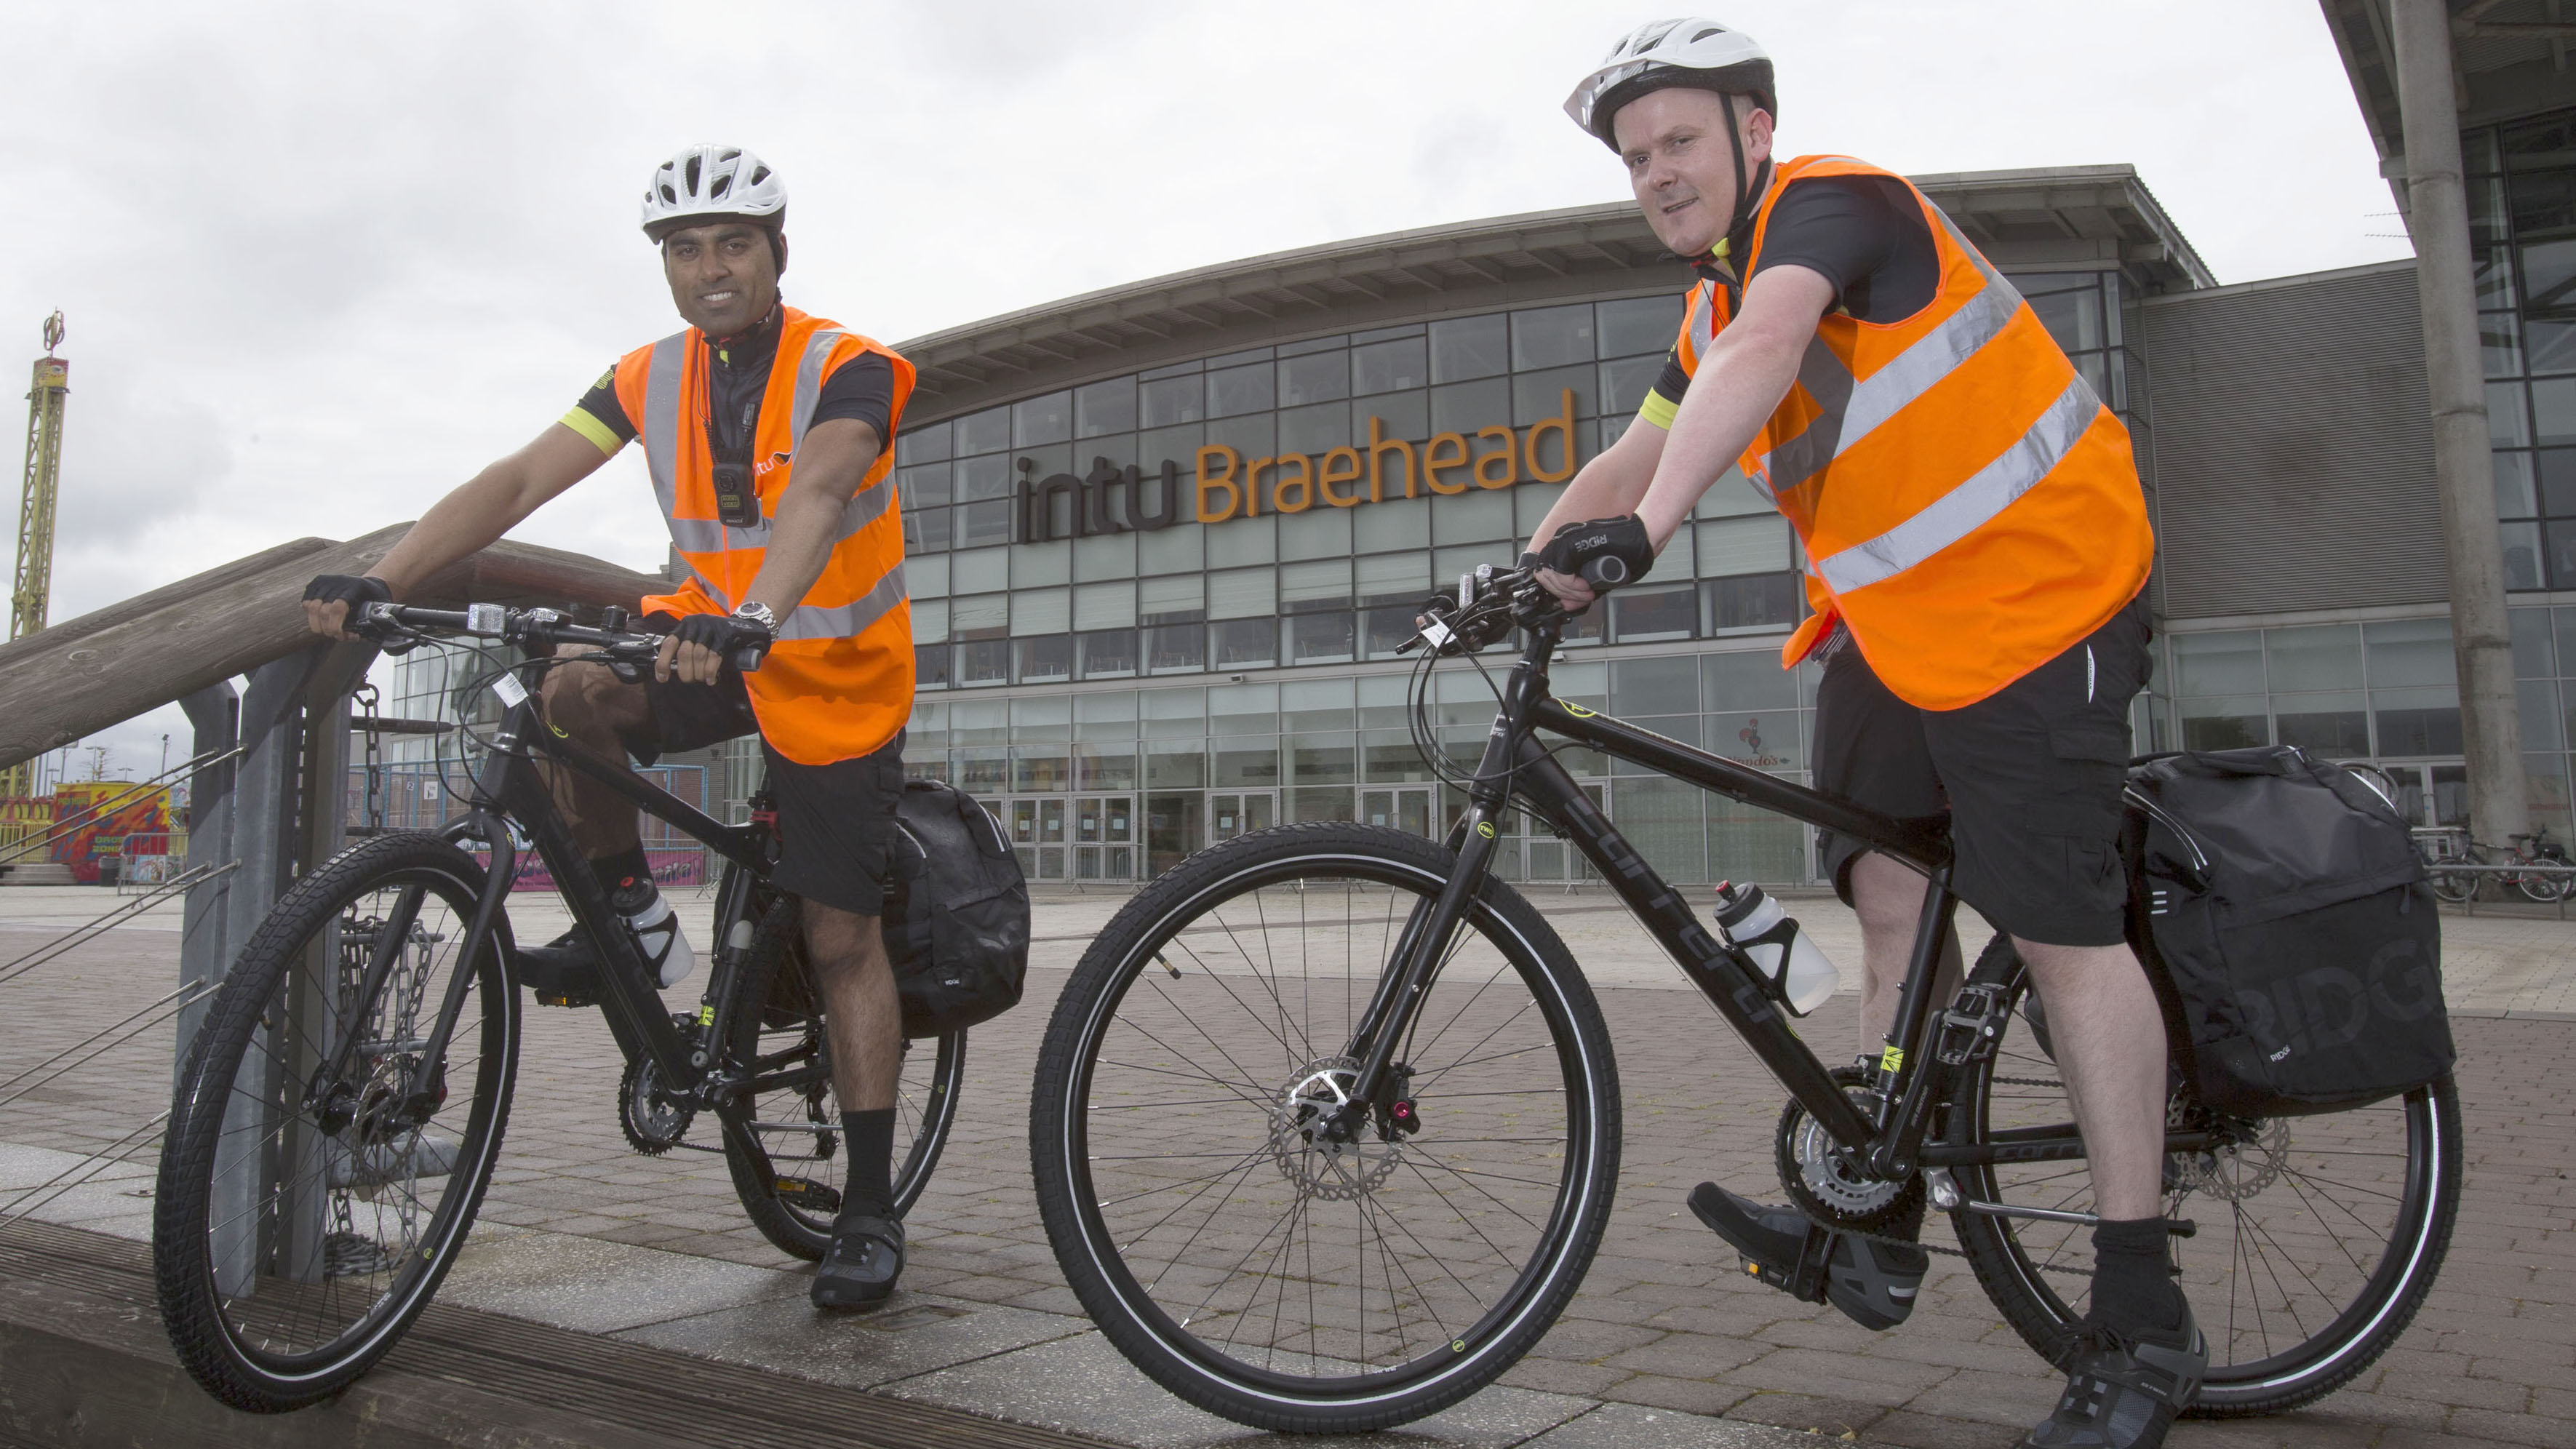 Media release: intu Braehead shopping mall launches bicycle patrols